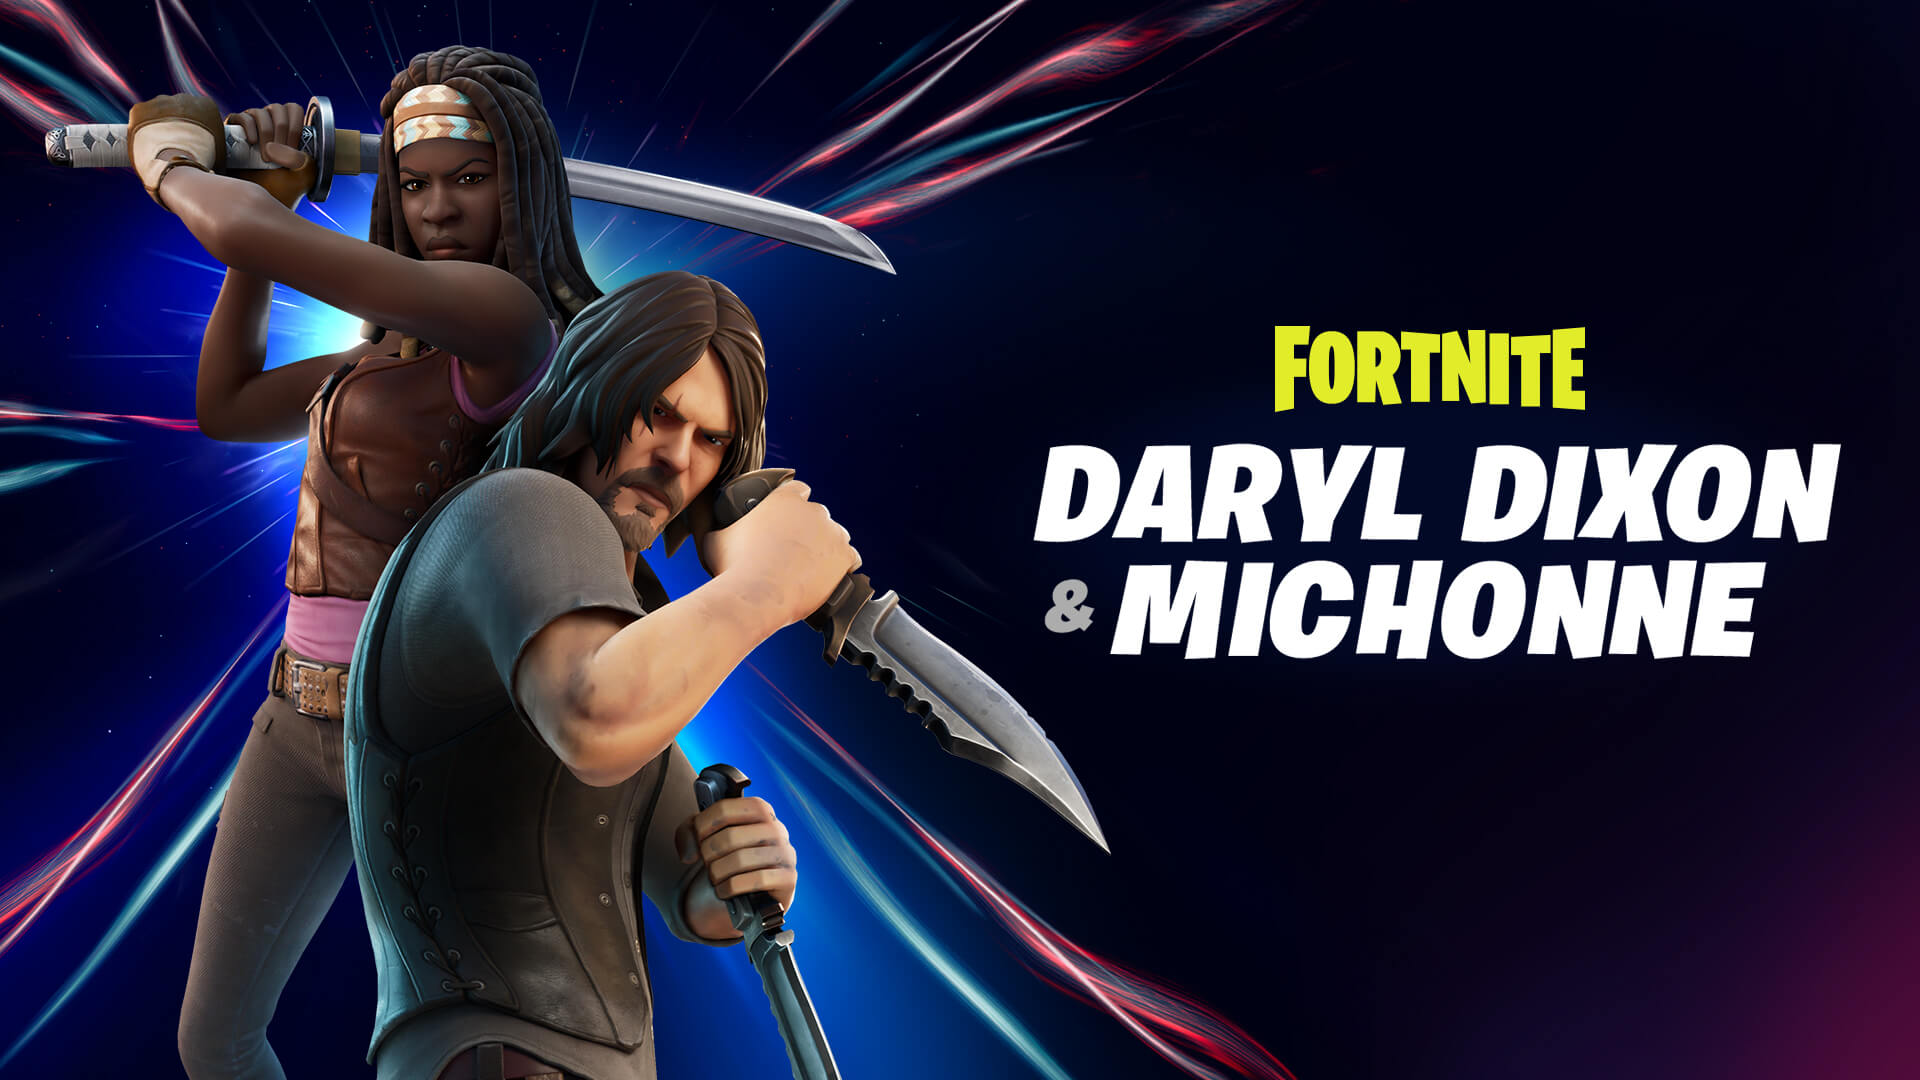 The Fortnite Daryl Dixon And Michonne Outfits